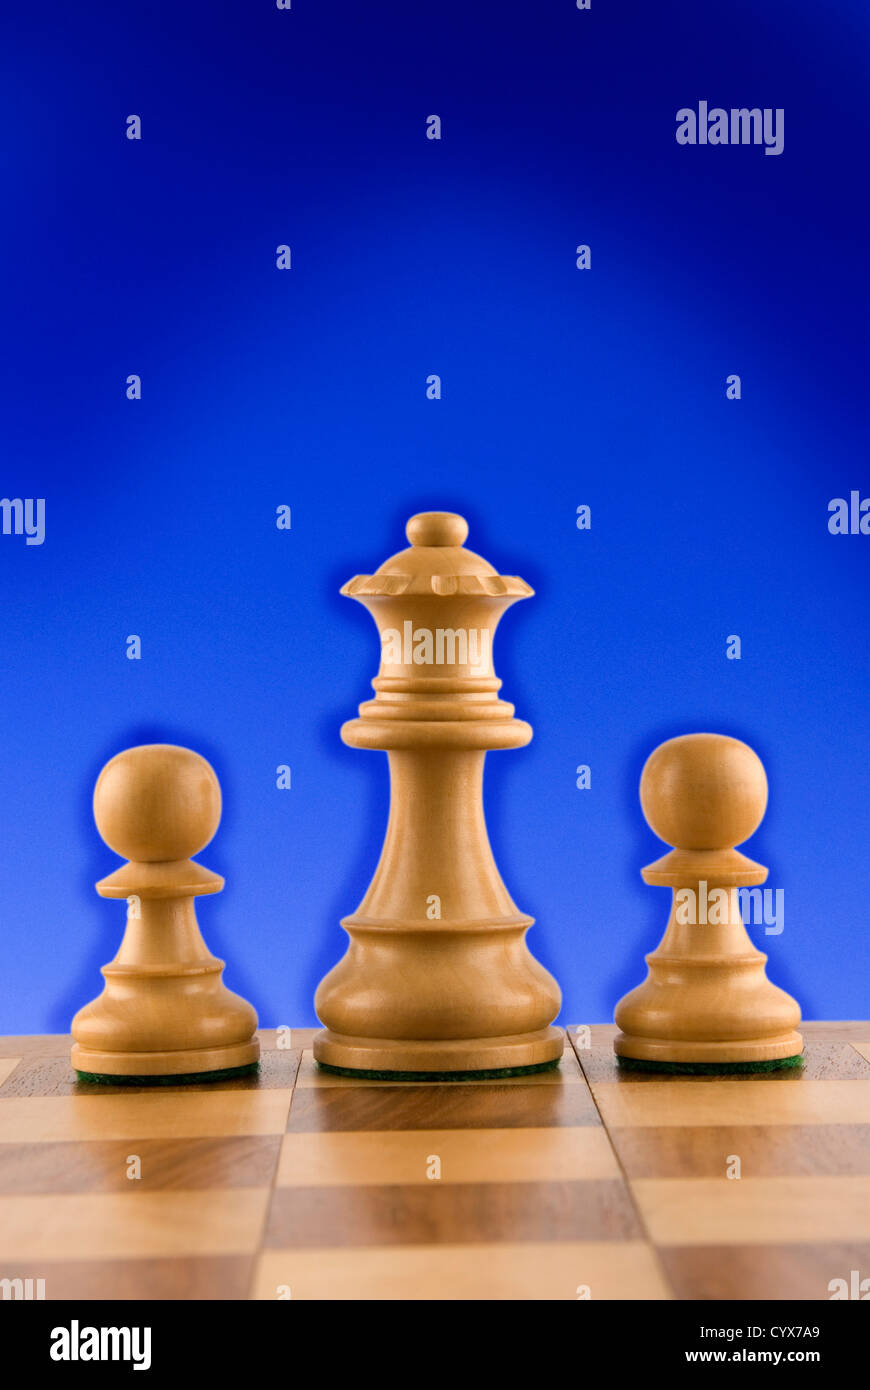 Close-up of chess queen and pawns - Stock Image